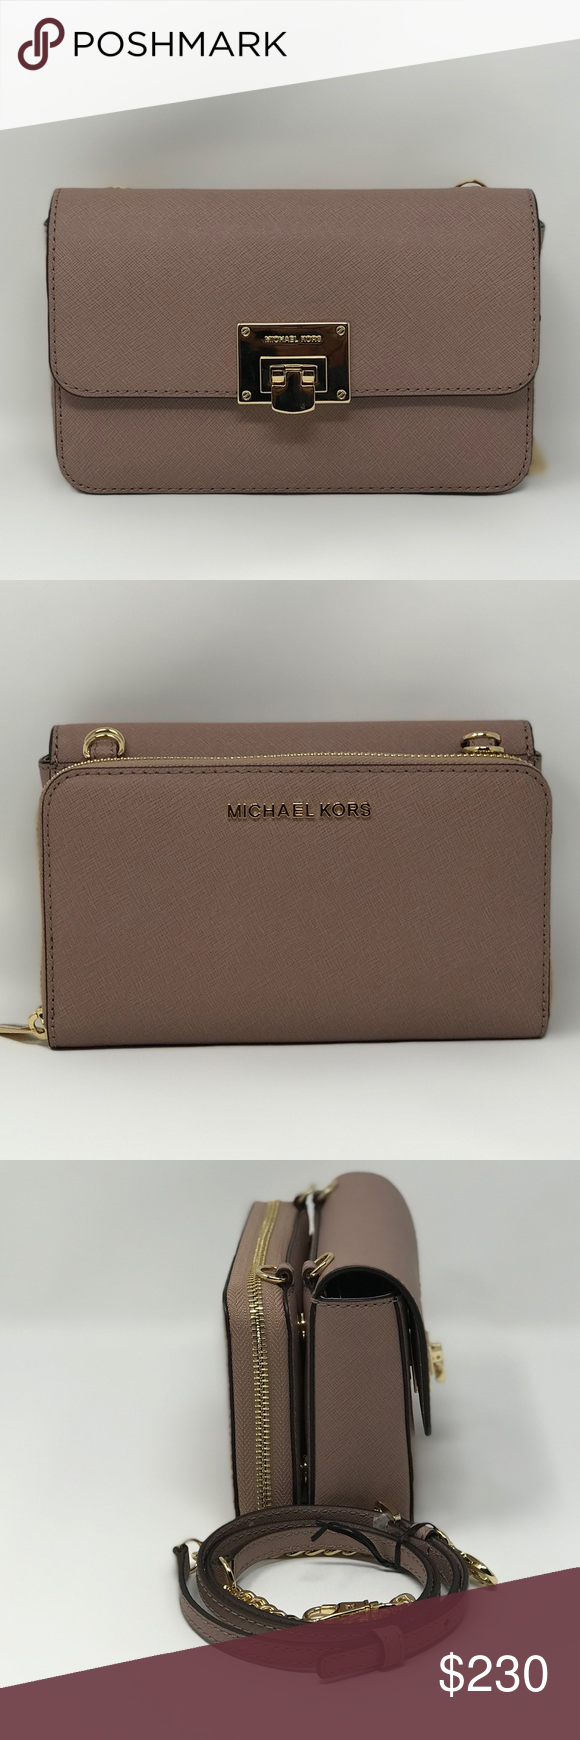 3c46472ddb17 Michael Kors Tina 2 in 1 Handbag   Wallet Clutch Authentic